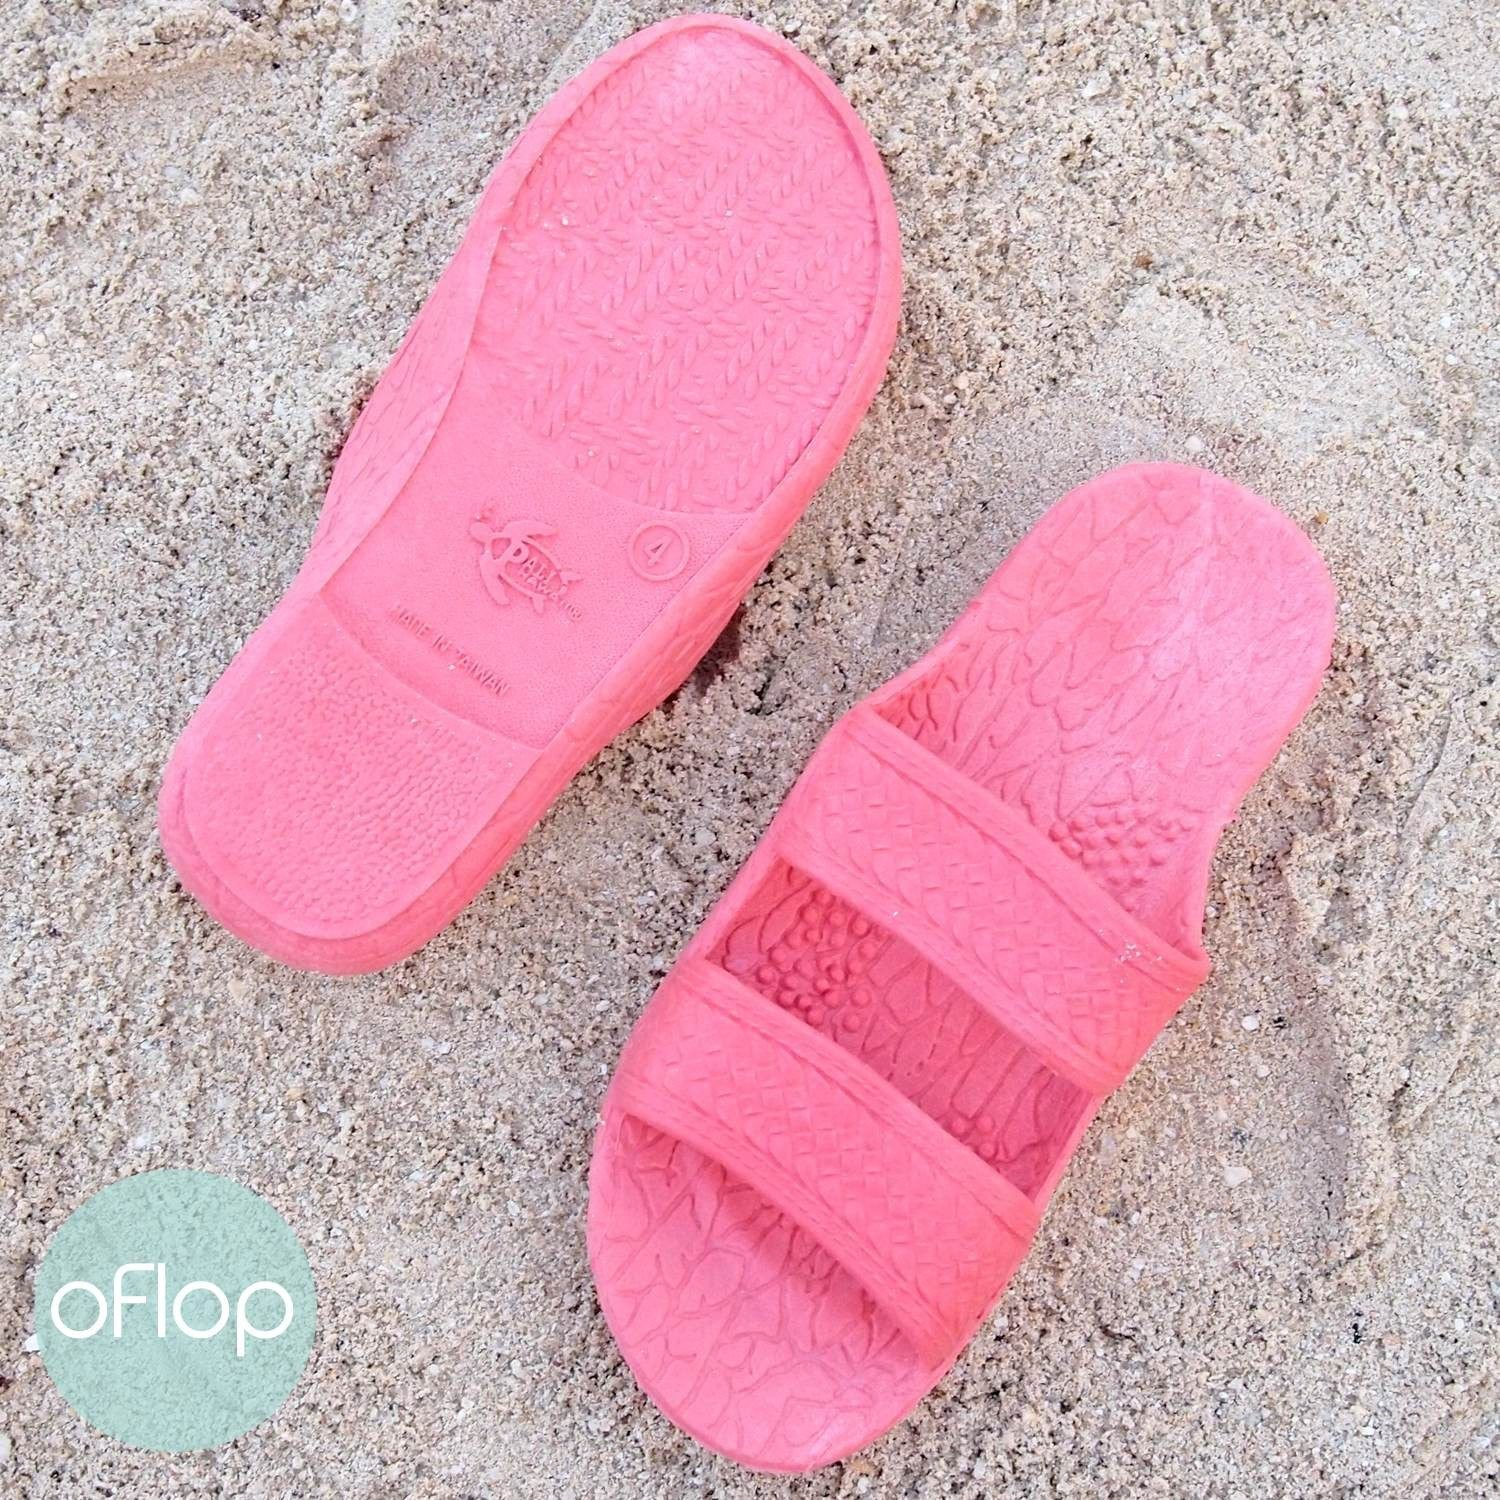 Sandals - Pink Kids Jandals -- Pali Hawaii Hawaiian Jesus Sandals